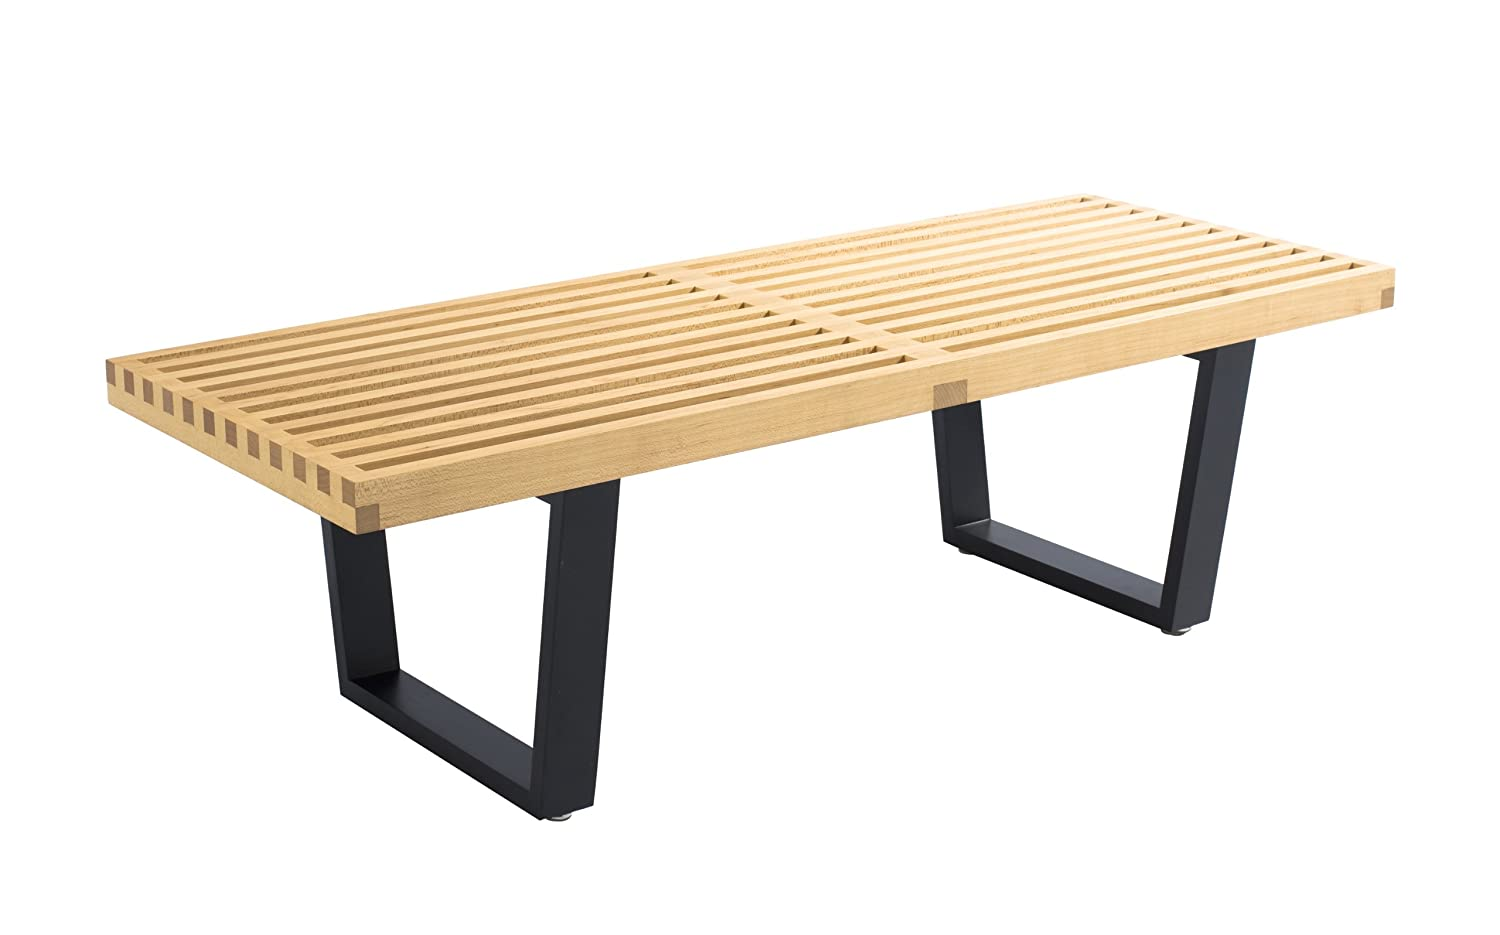 Marvelous Amazon Com George Nelson Bench Table Benches Andrewgaddart Wooden Chair Designs For Living Room Andrewgaddartcom